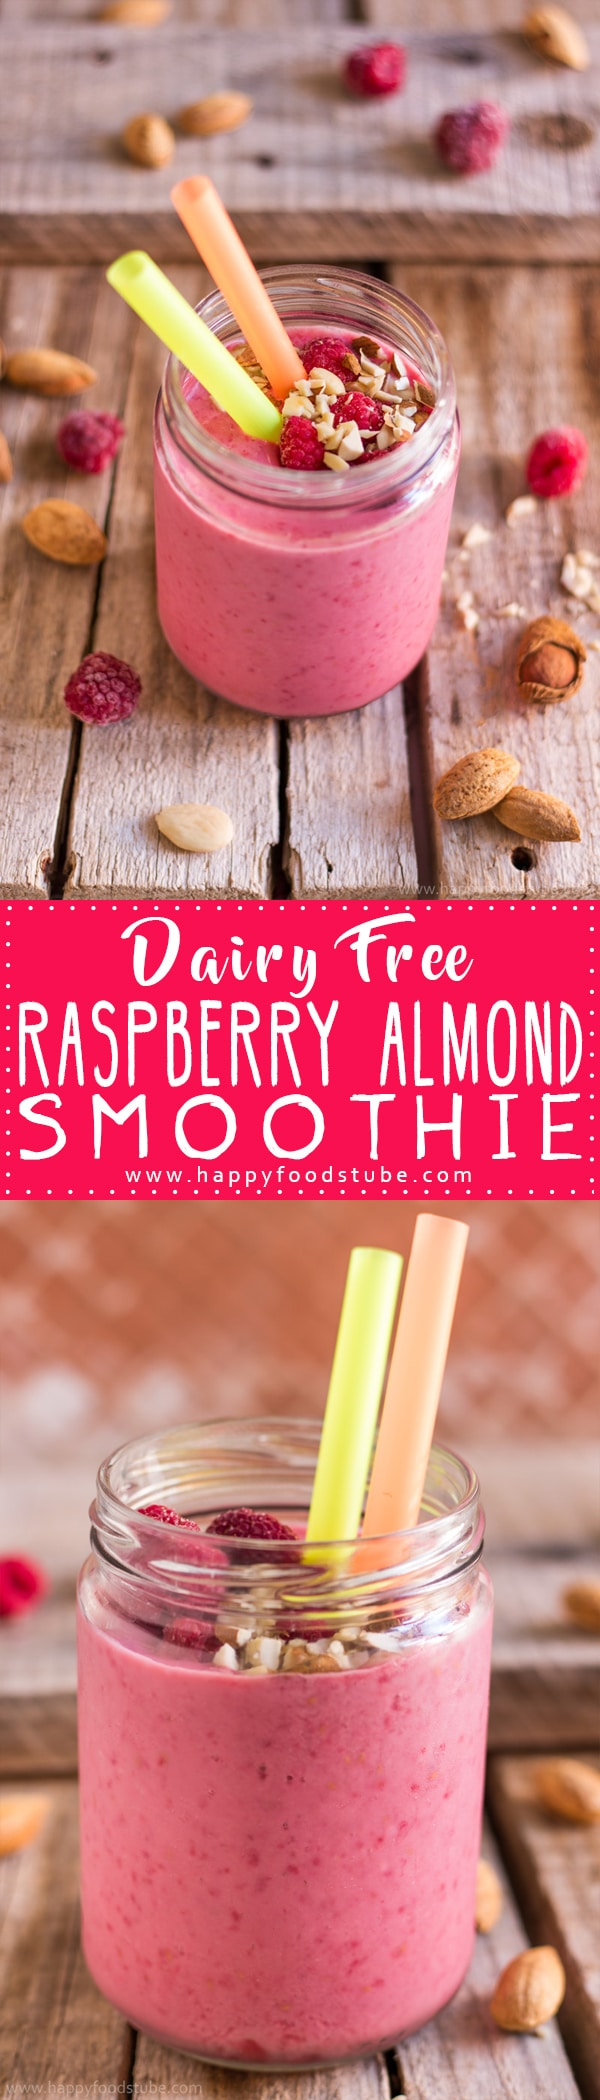 Raspberry Almond Smoothie is a great choice for those looking for dairy free alternatives but also for those who like almond milk or want to stay healthy! Only 4-ingredients and ready in 5-minutes